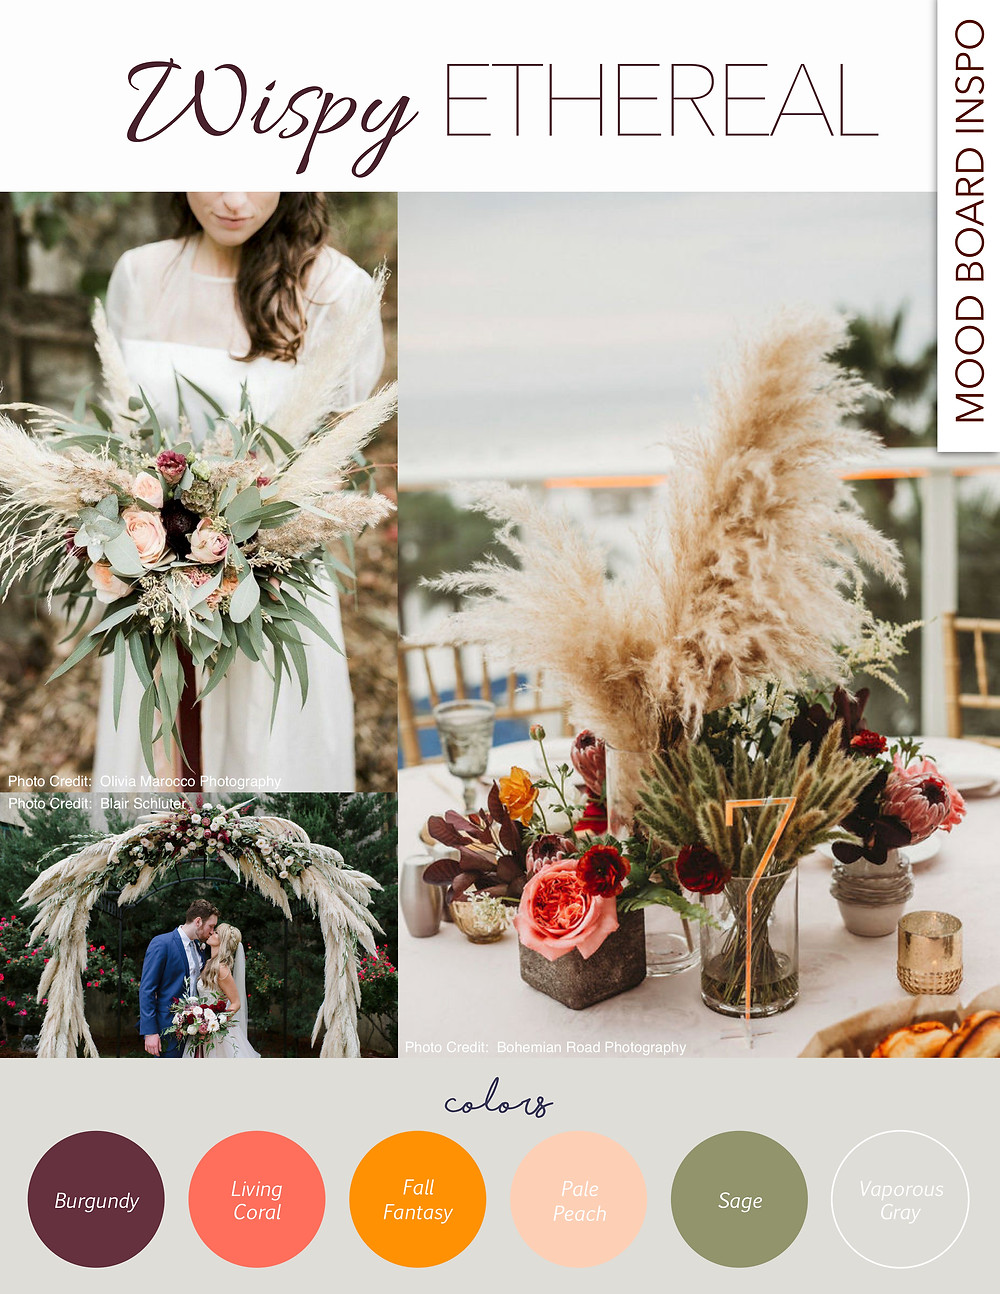 Wispy, Ethereal, Mood Board, Wedding, Planning, Planner, Coordination, Coordinator, Decorator, Decor, Event Setup, Columbia, MO, Boho, Inspo, Bohemian, Design, Blue Diamond Events